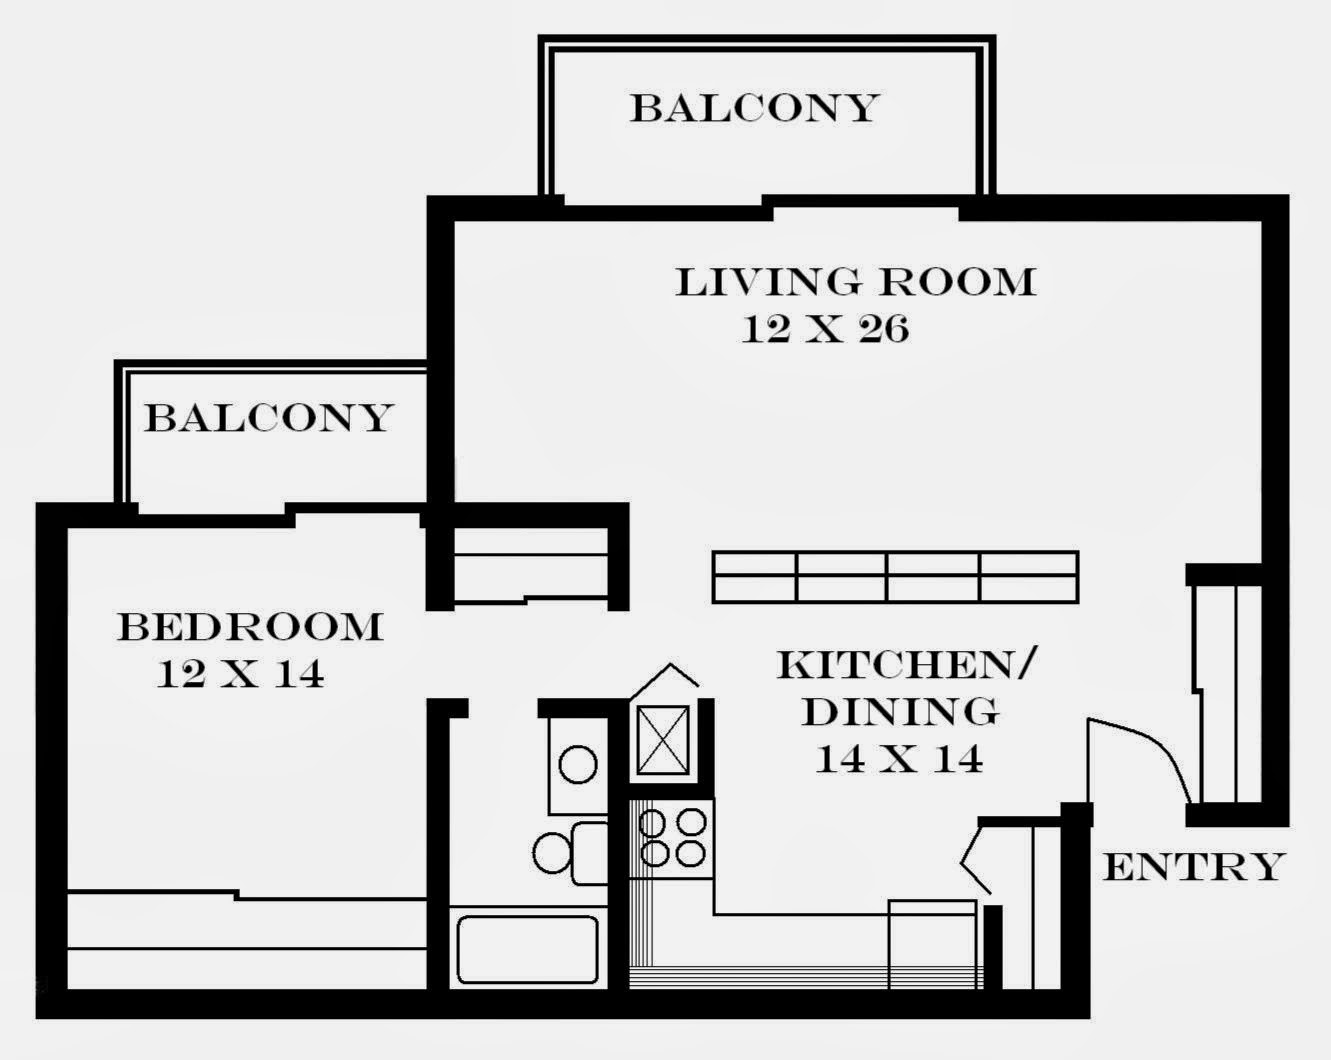 Studio Apartment Layout Plans 1 bedroom studio floor plans lasco properties apartments for rent